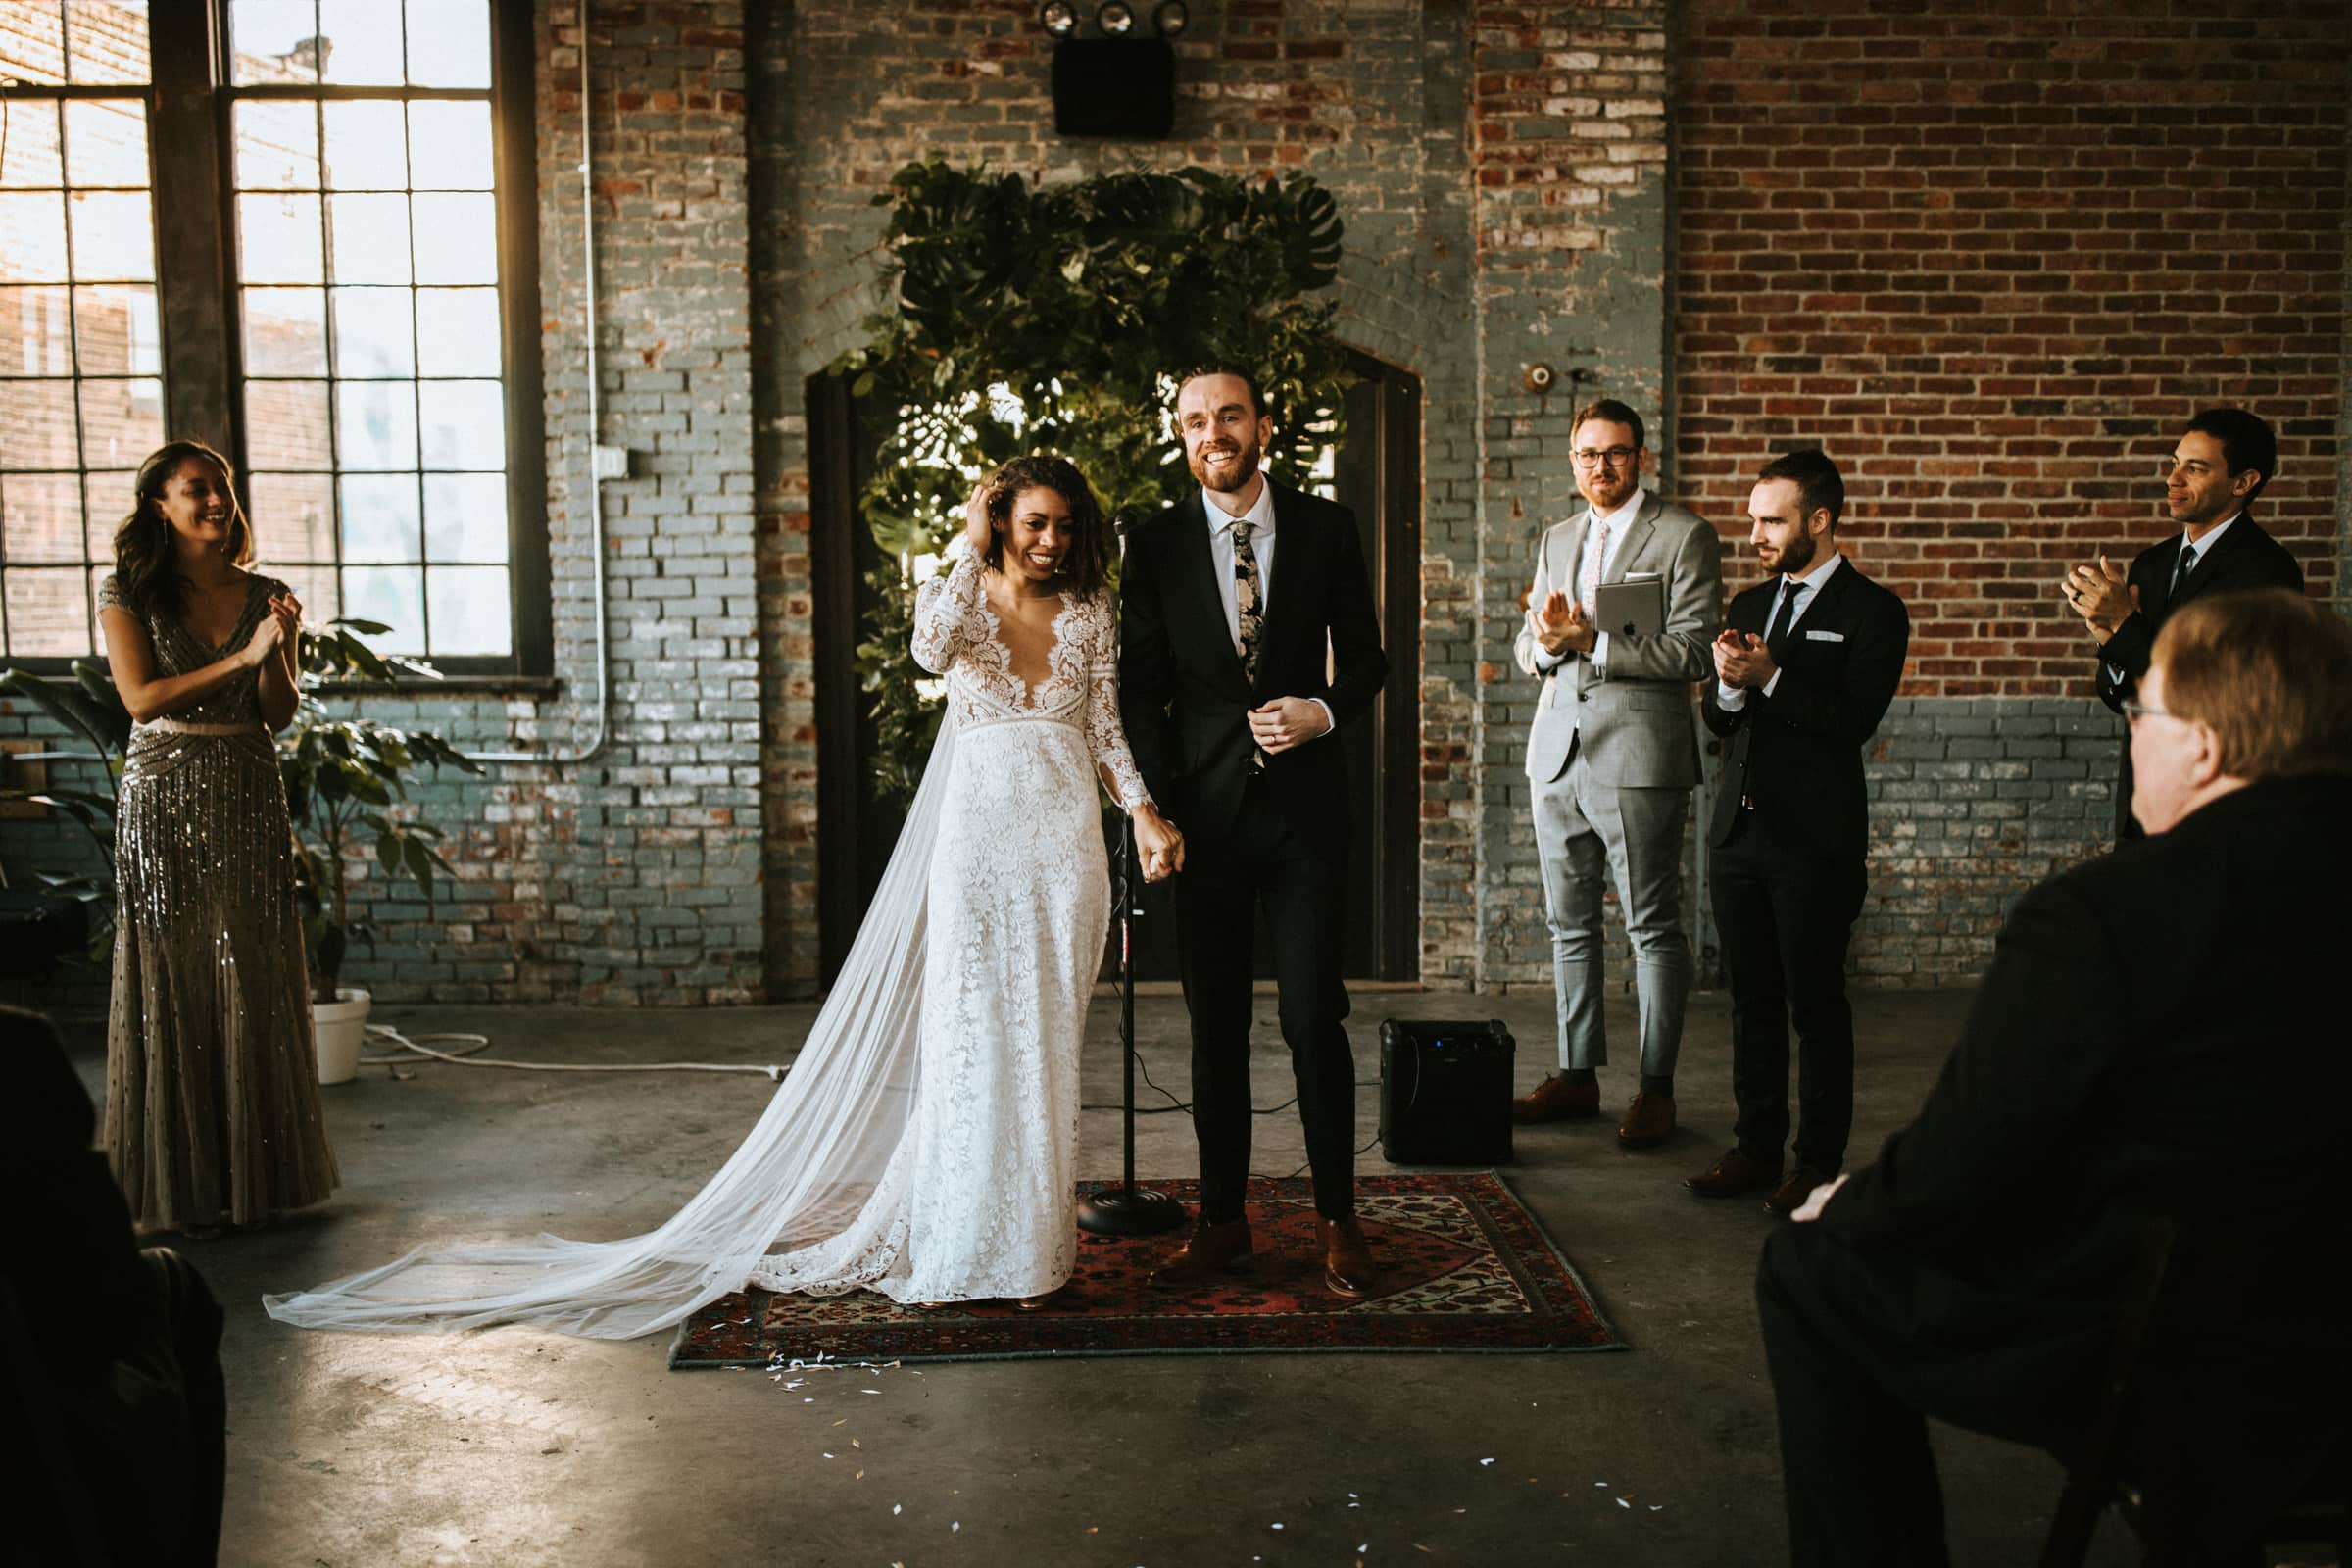 The wedding couple is holding hands, smiling and facing their wedding guests.